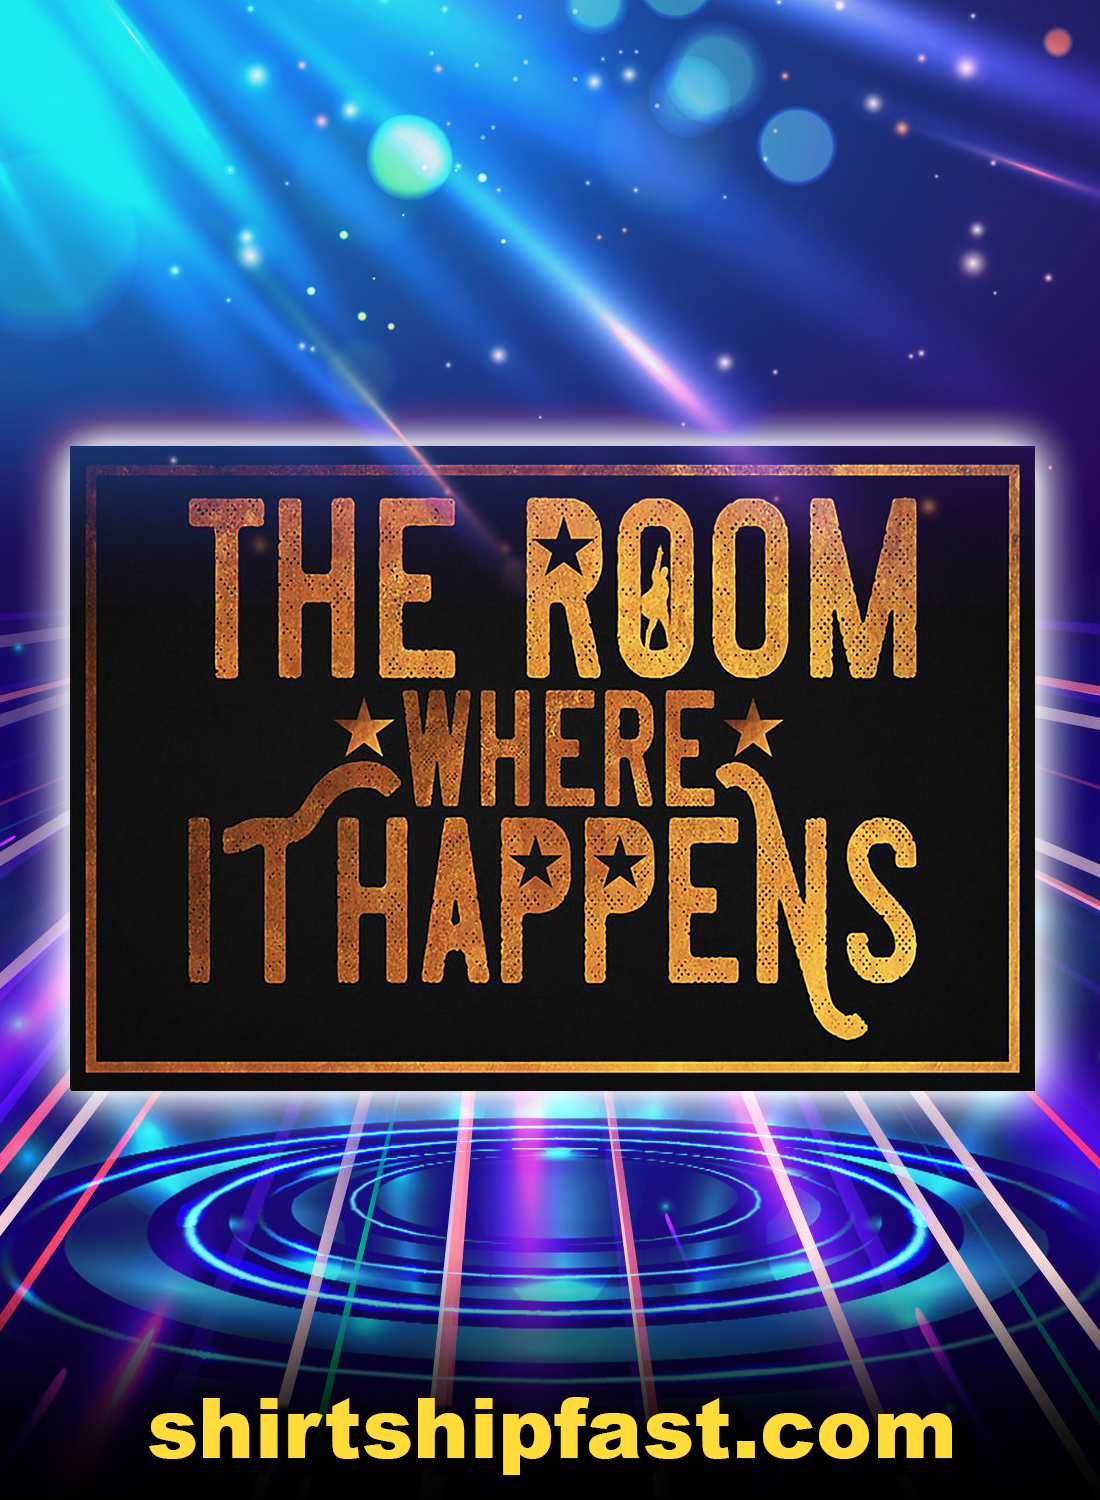 The room where it happens poster - A4